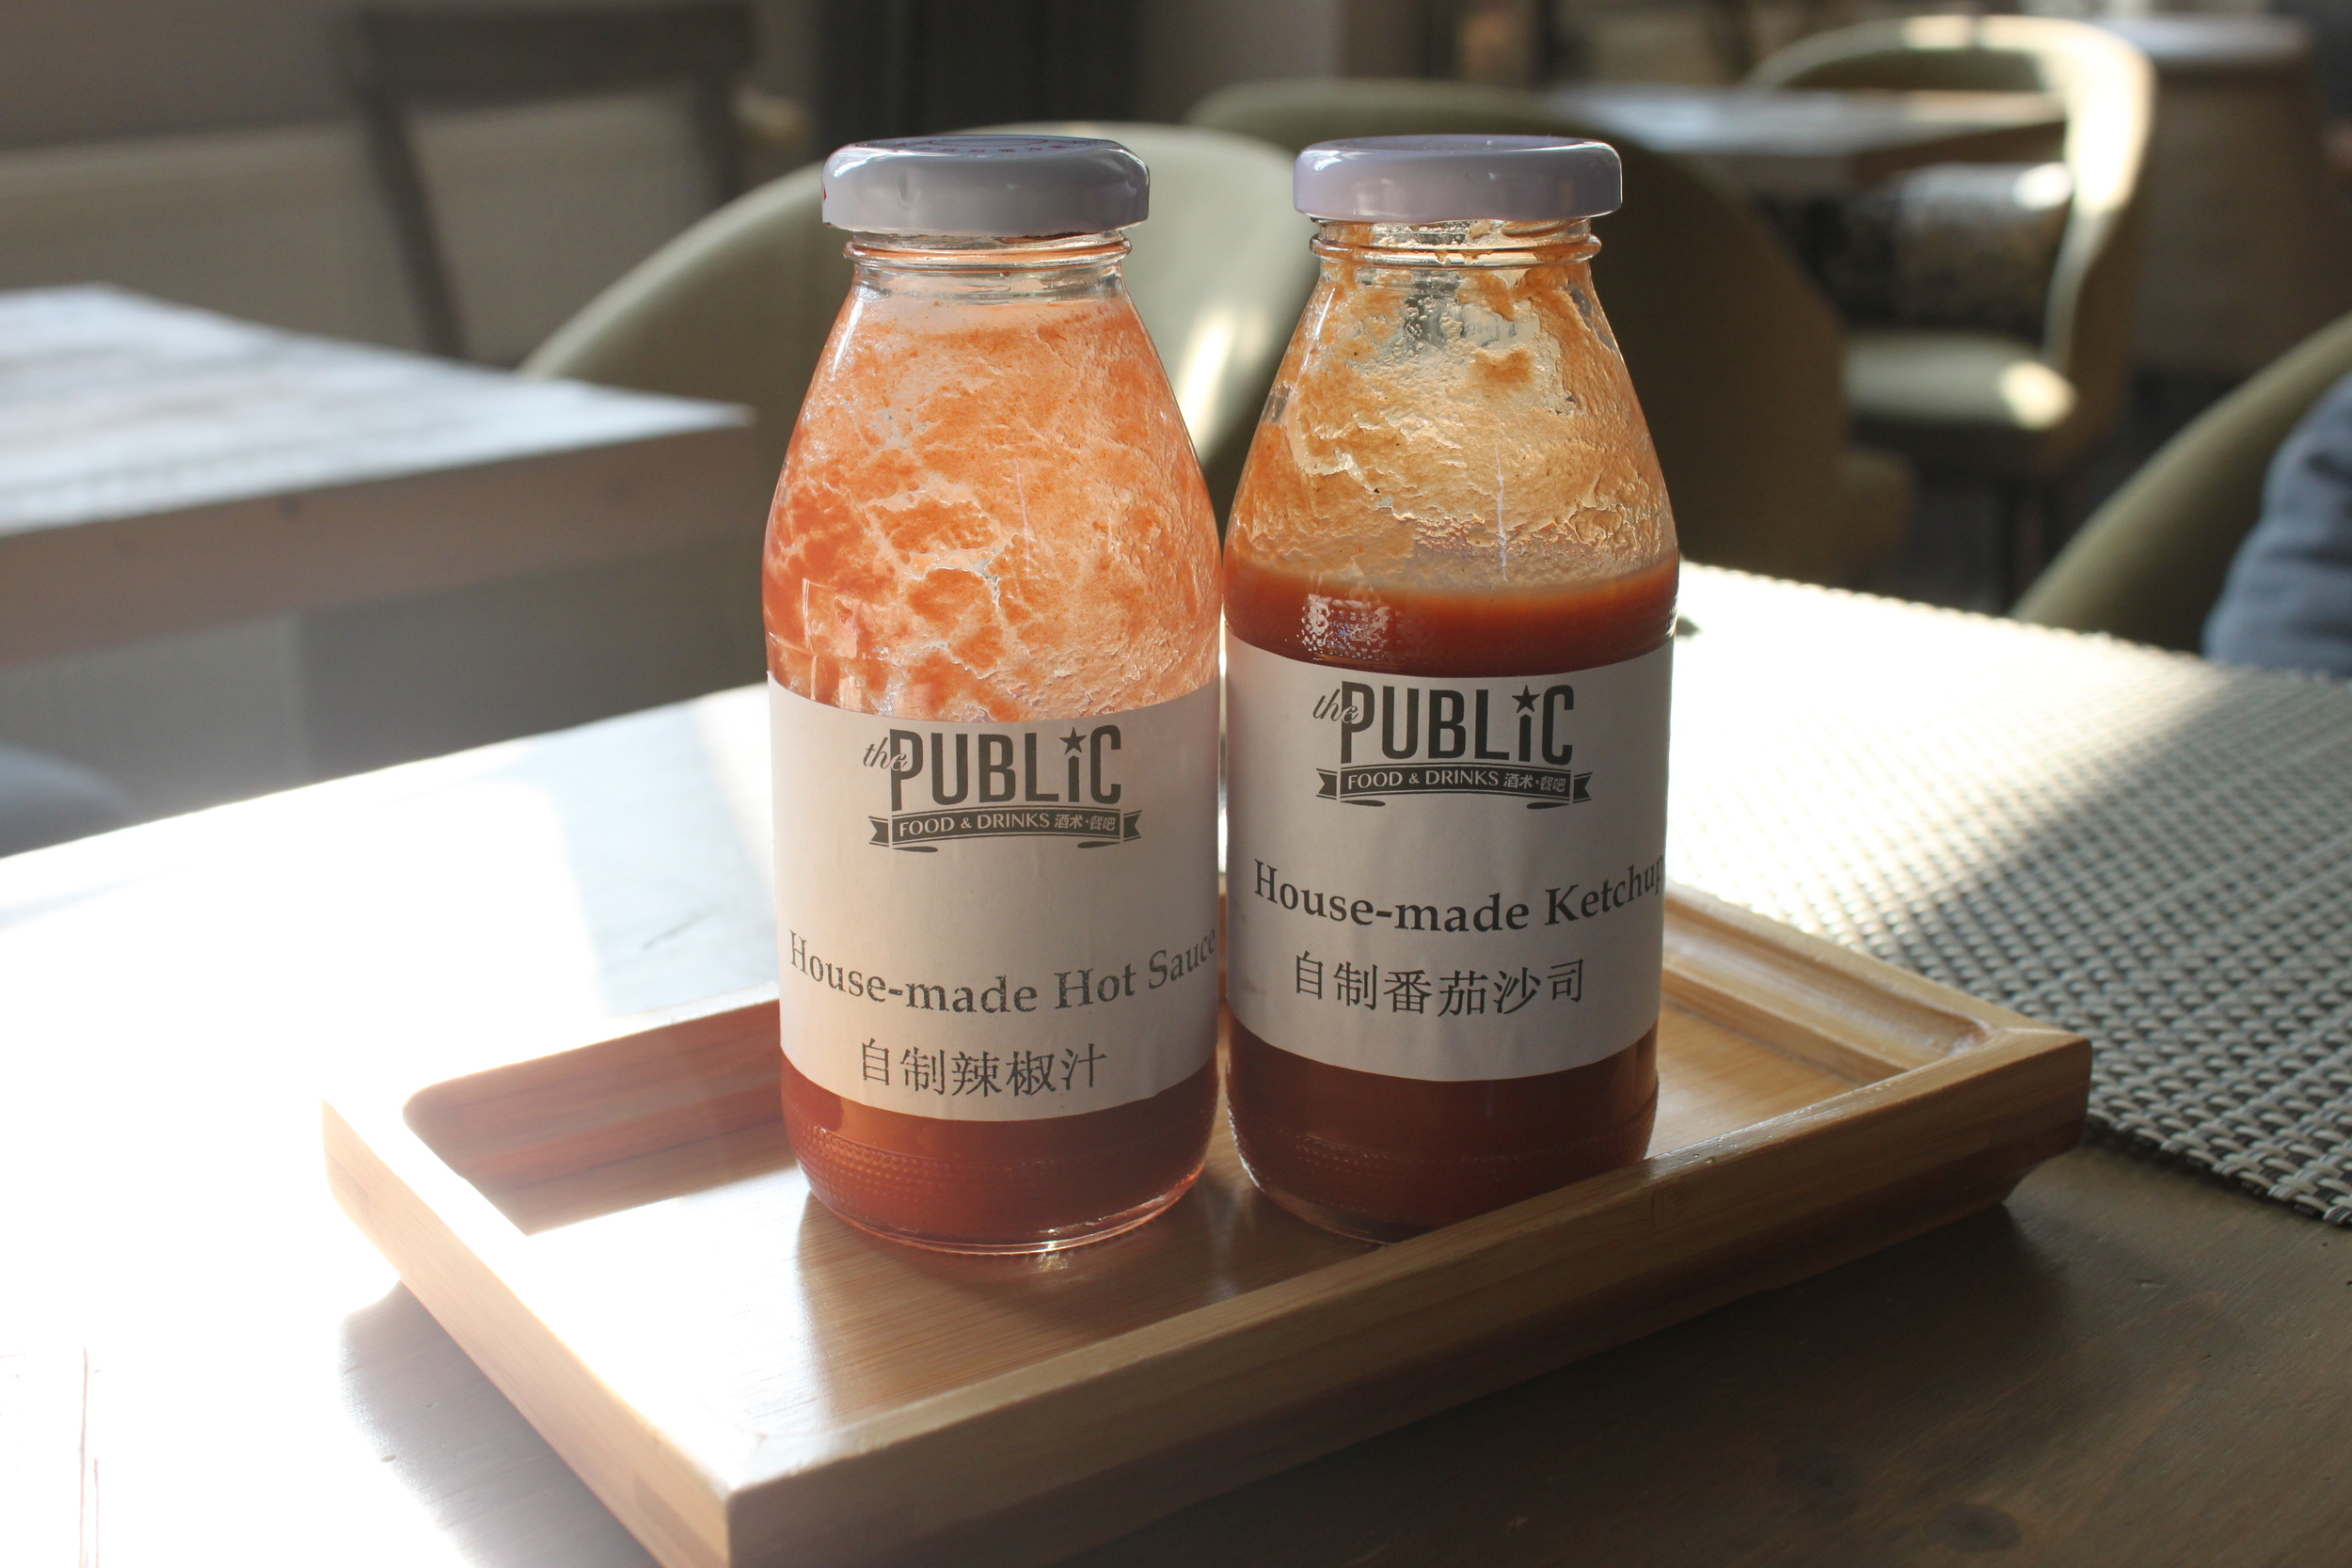 Love how they even make their own hot sauce, garlic sauce and ketchup.